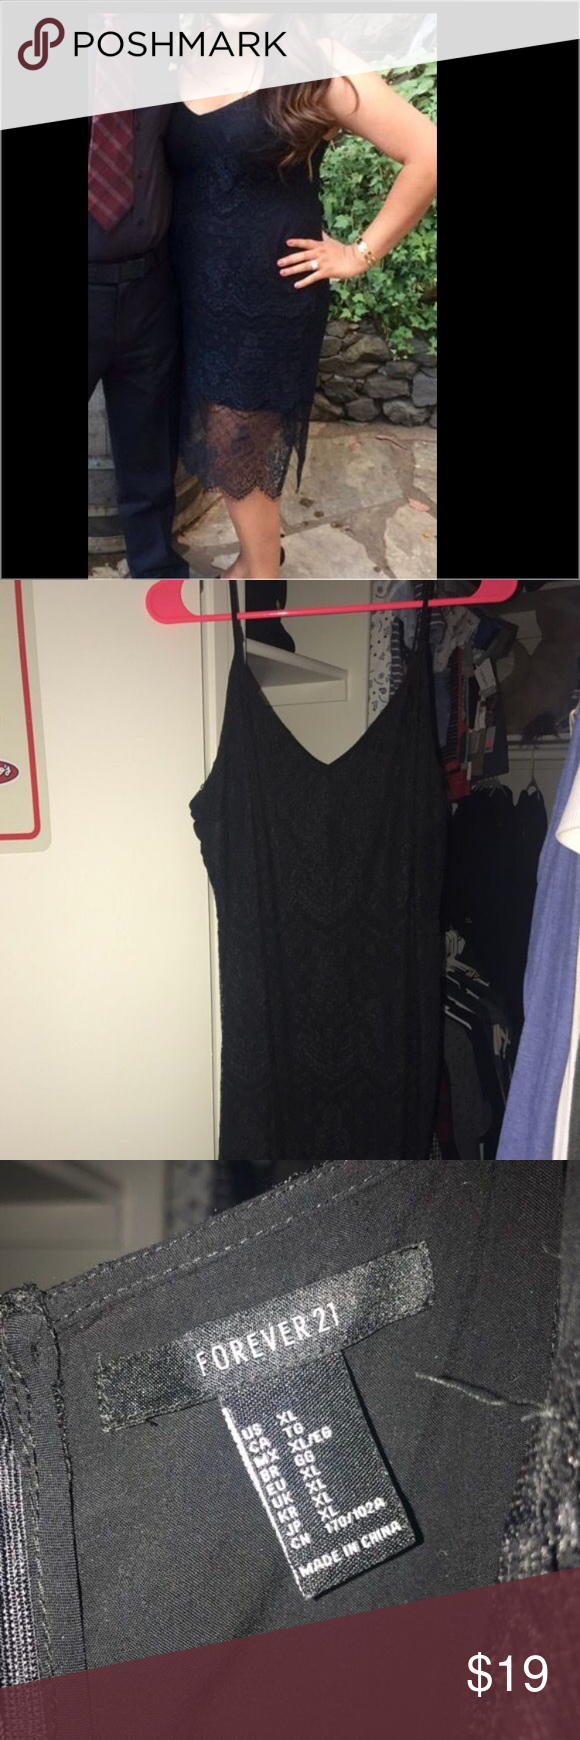 Black lace dress Used once for wedding Forever 21 Dresses High Low